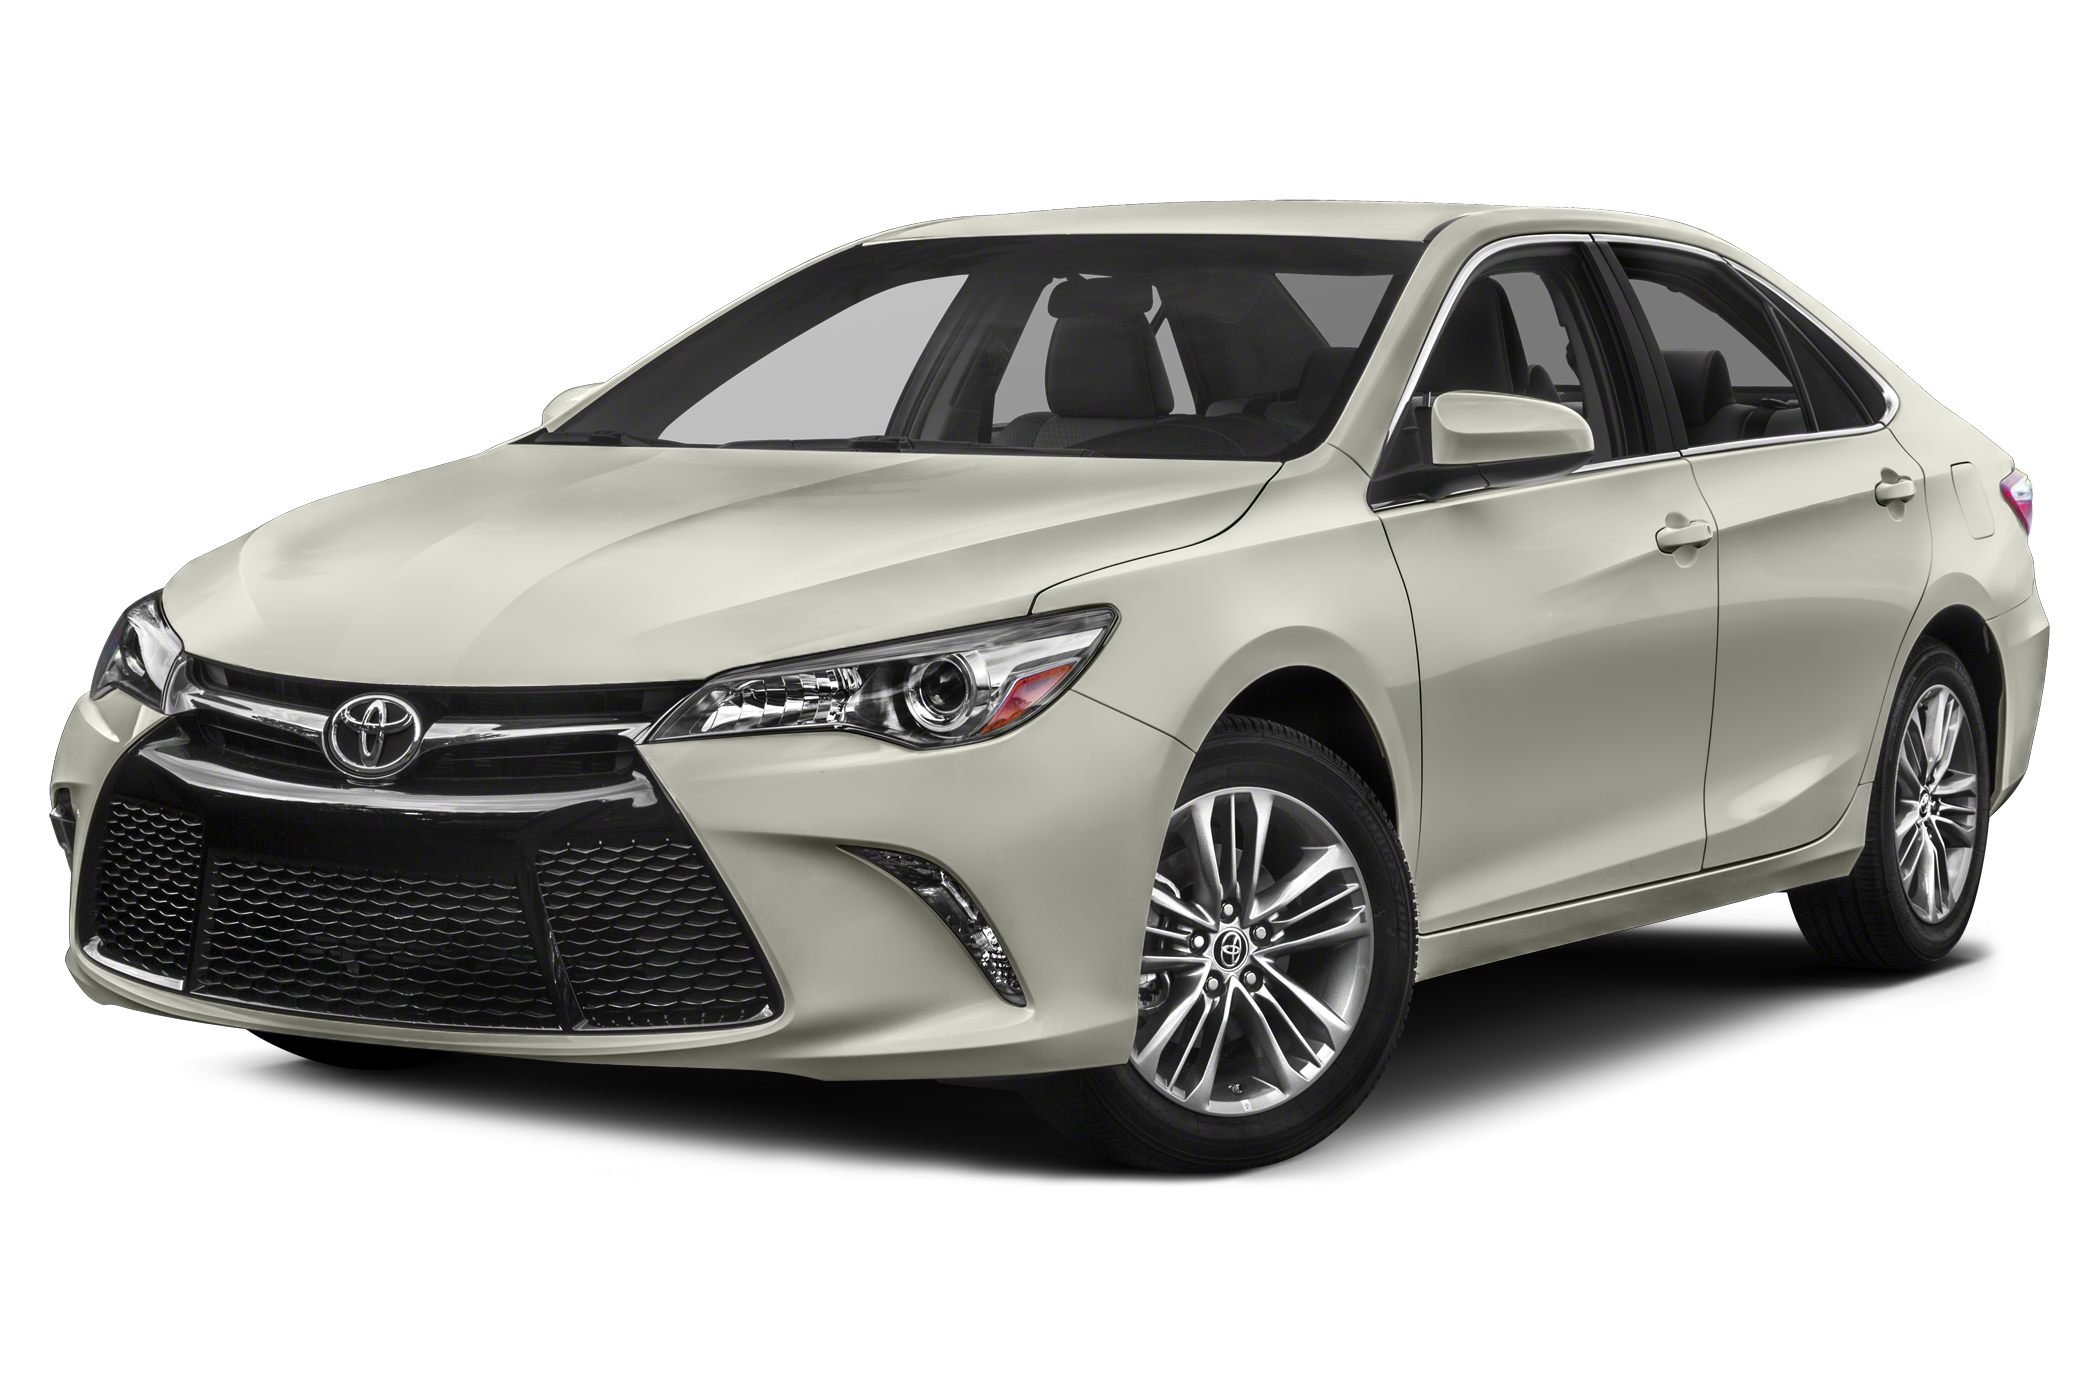 2015 Toyota Camry SE Sedan for sale in Greer for $25,110 with 12 miles.